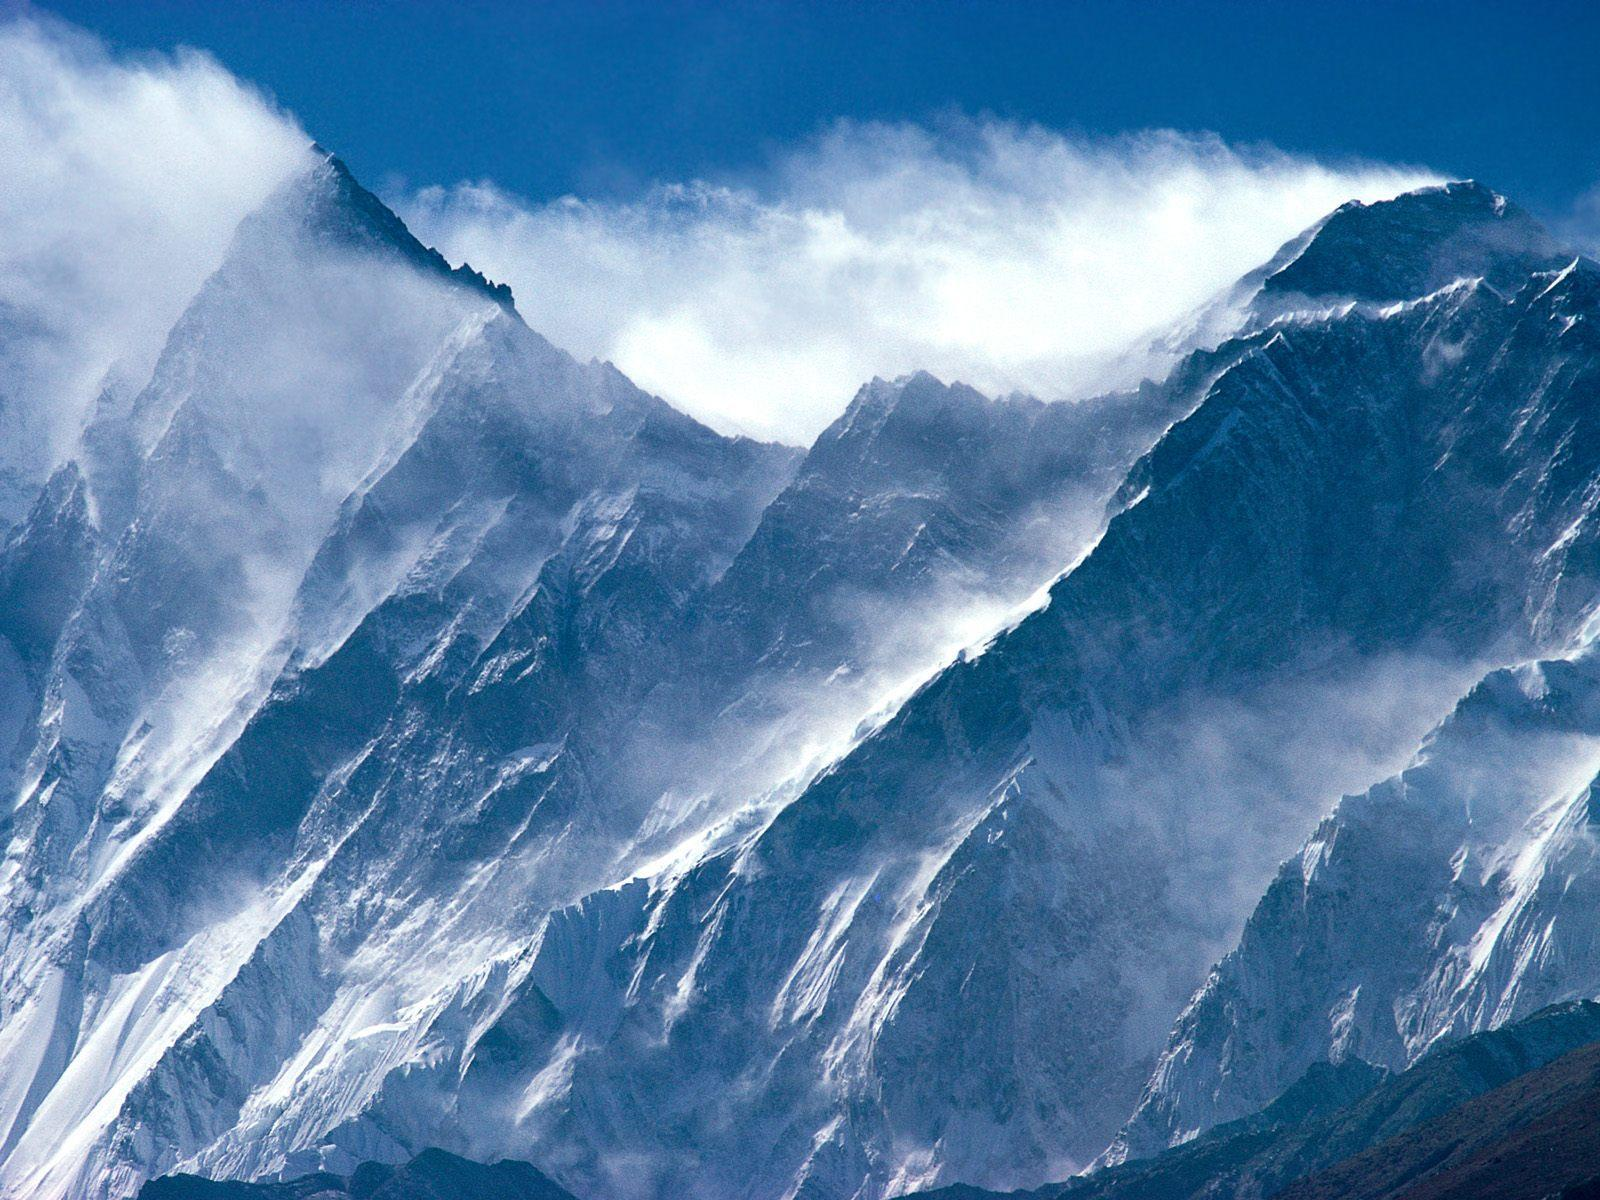 himalaya mountains hd wallpaper -#main